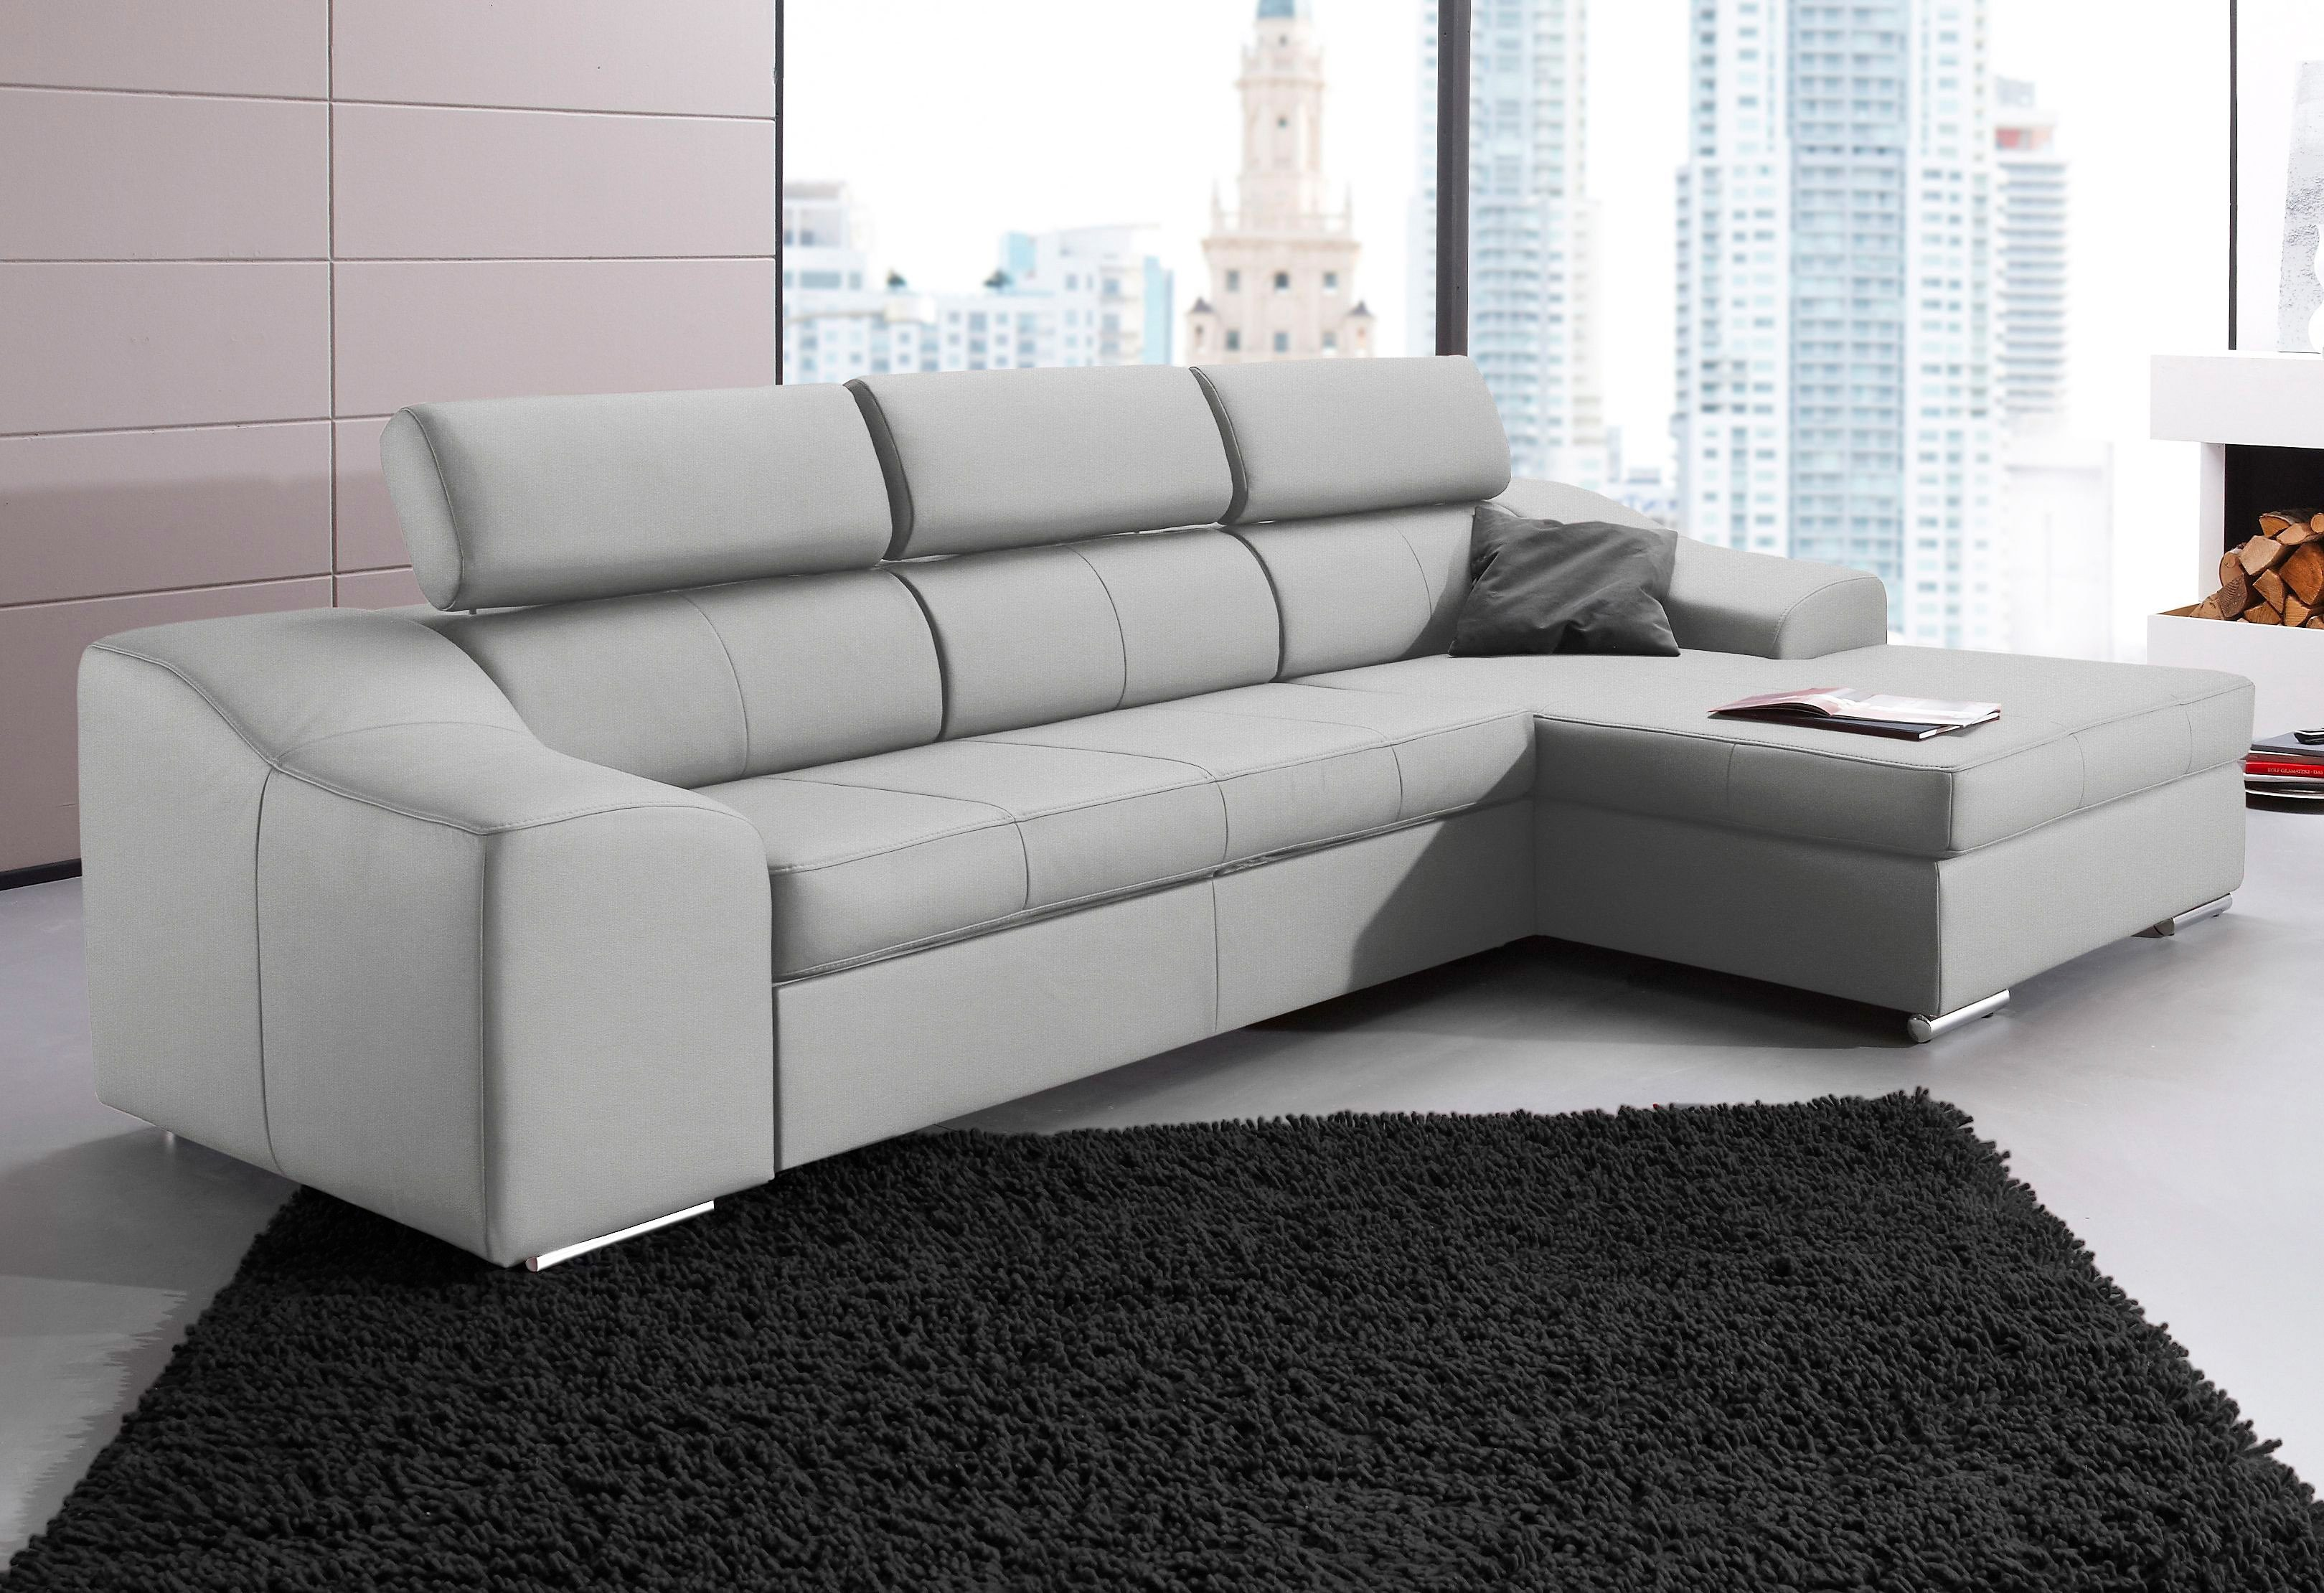 Otto Loungebank Otto Loungebank Finest Cheap Beautiful Kissen Fr Sofa Hausdesign